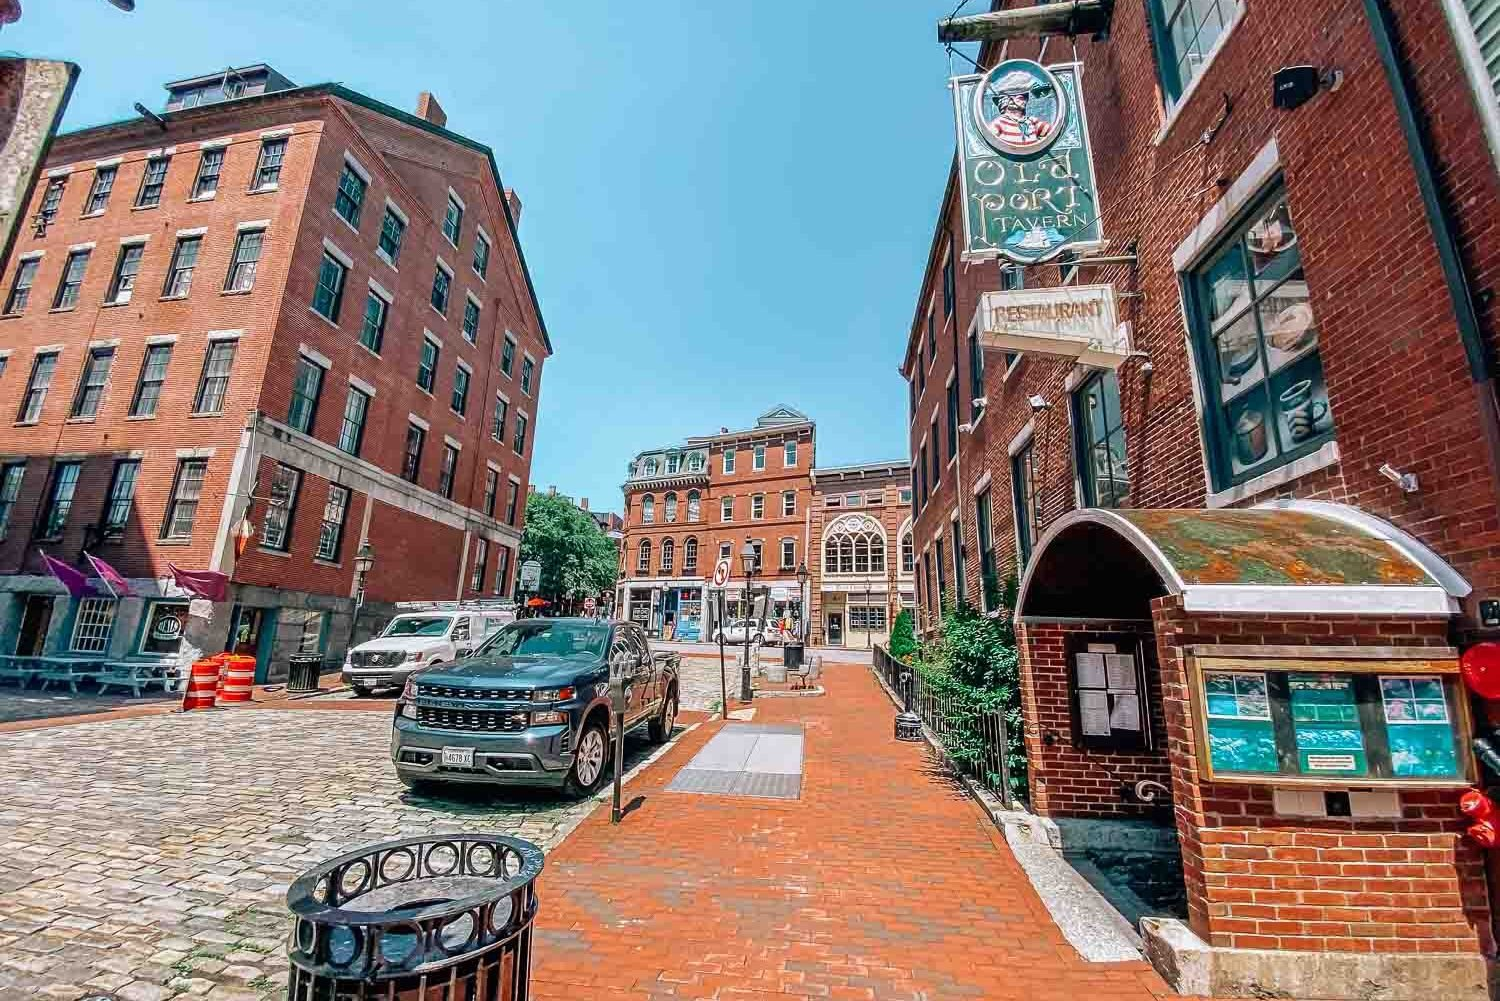 Old Port, Portland, Maine with cobblestone streets, brick sidewalks, and brick buildings. There is a sign hanging on the right that reads Old Port Tavern.